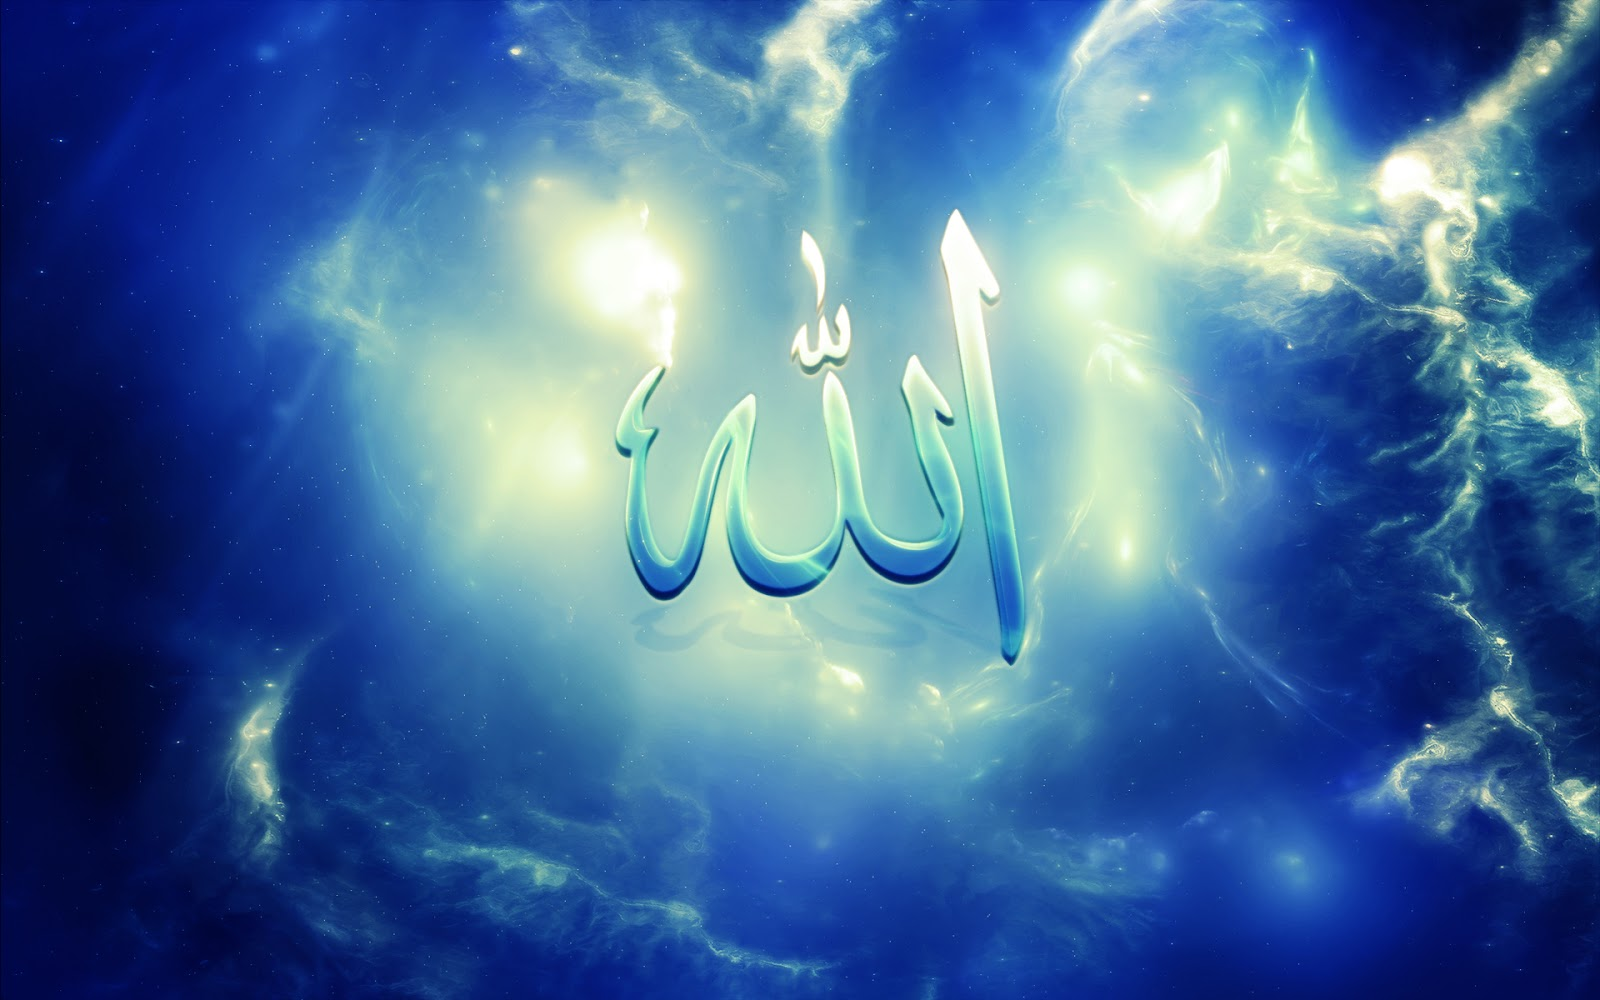 allah name wallpapers hd islamic wallpapers